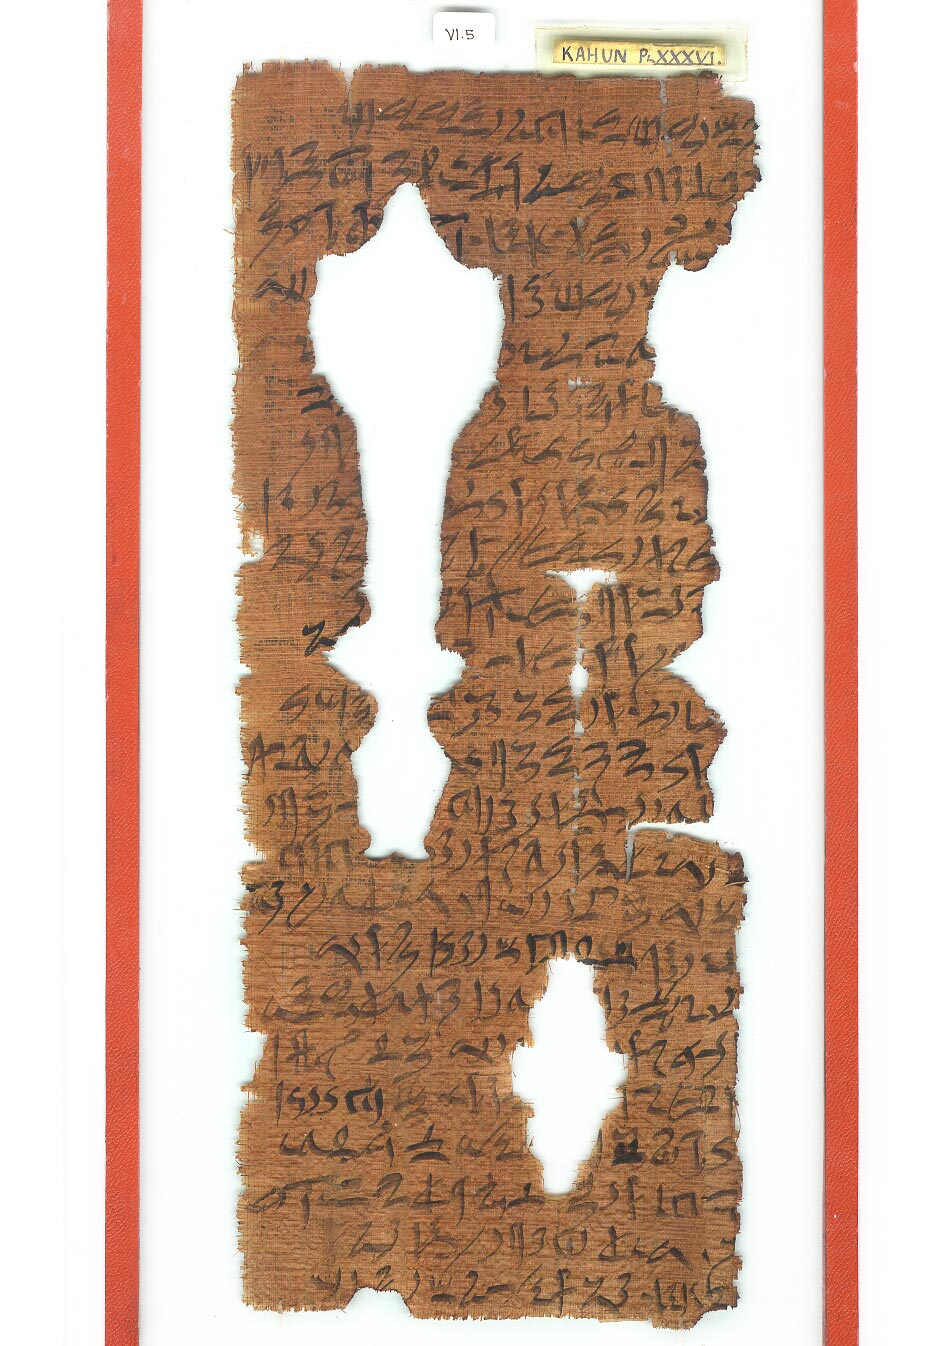 a photo of a fragile papyrus in a case with a red frame